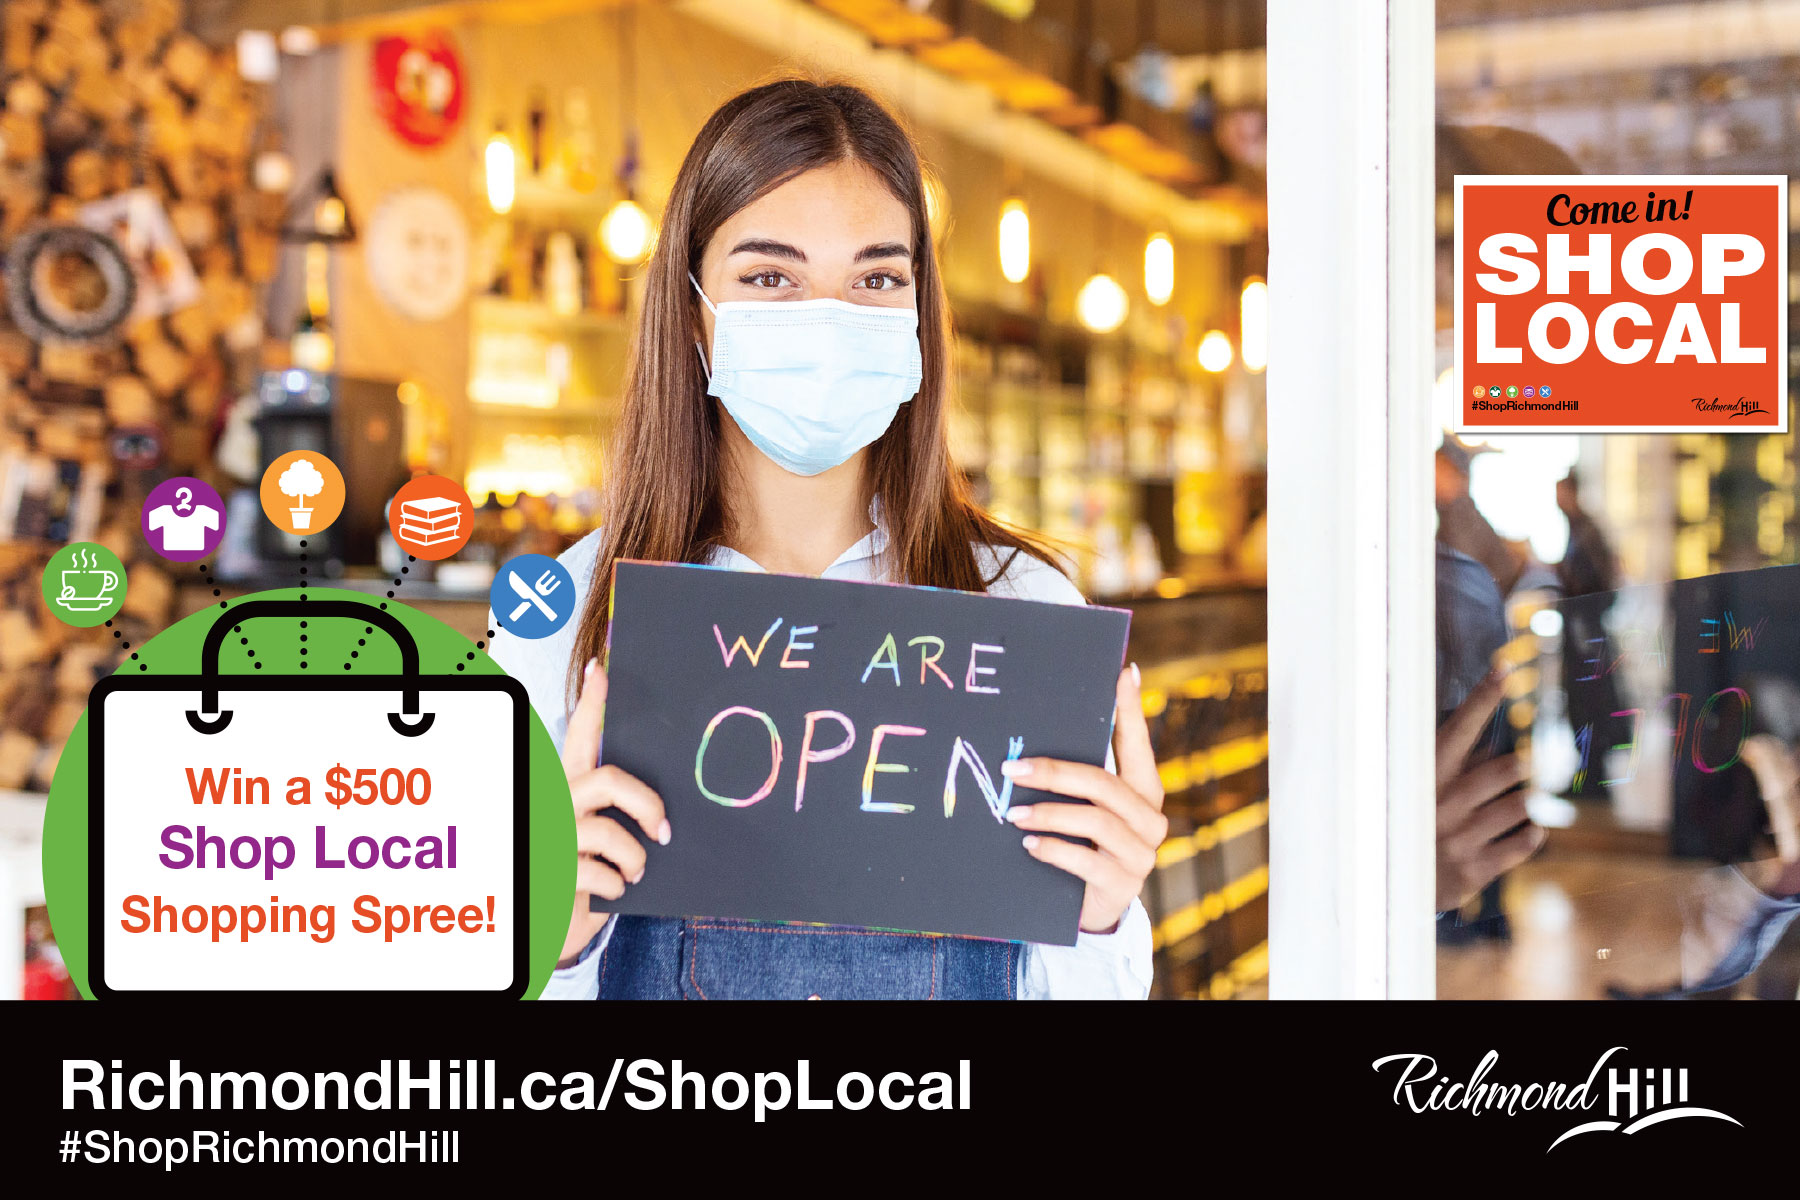 Business owner holds a We Are Open sign for the City of Richmond Hill Shop Local Contest. Participants can win a $500 Shop Local Shopping Spree.